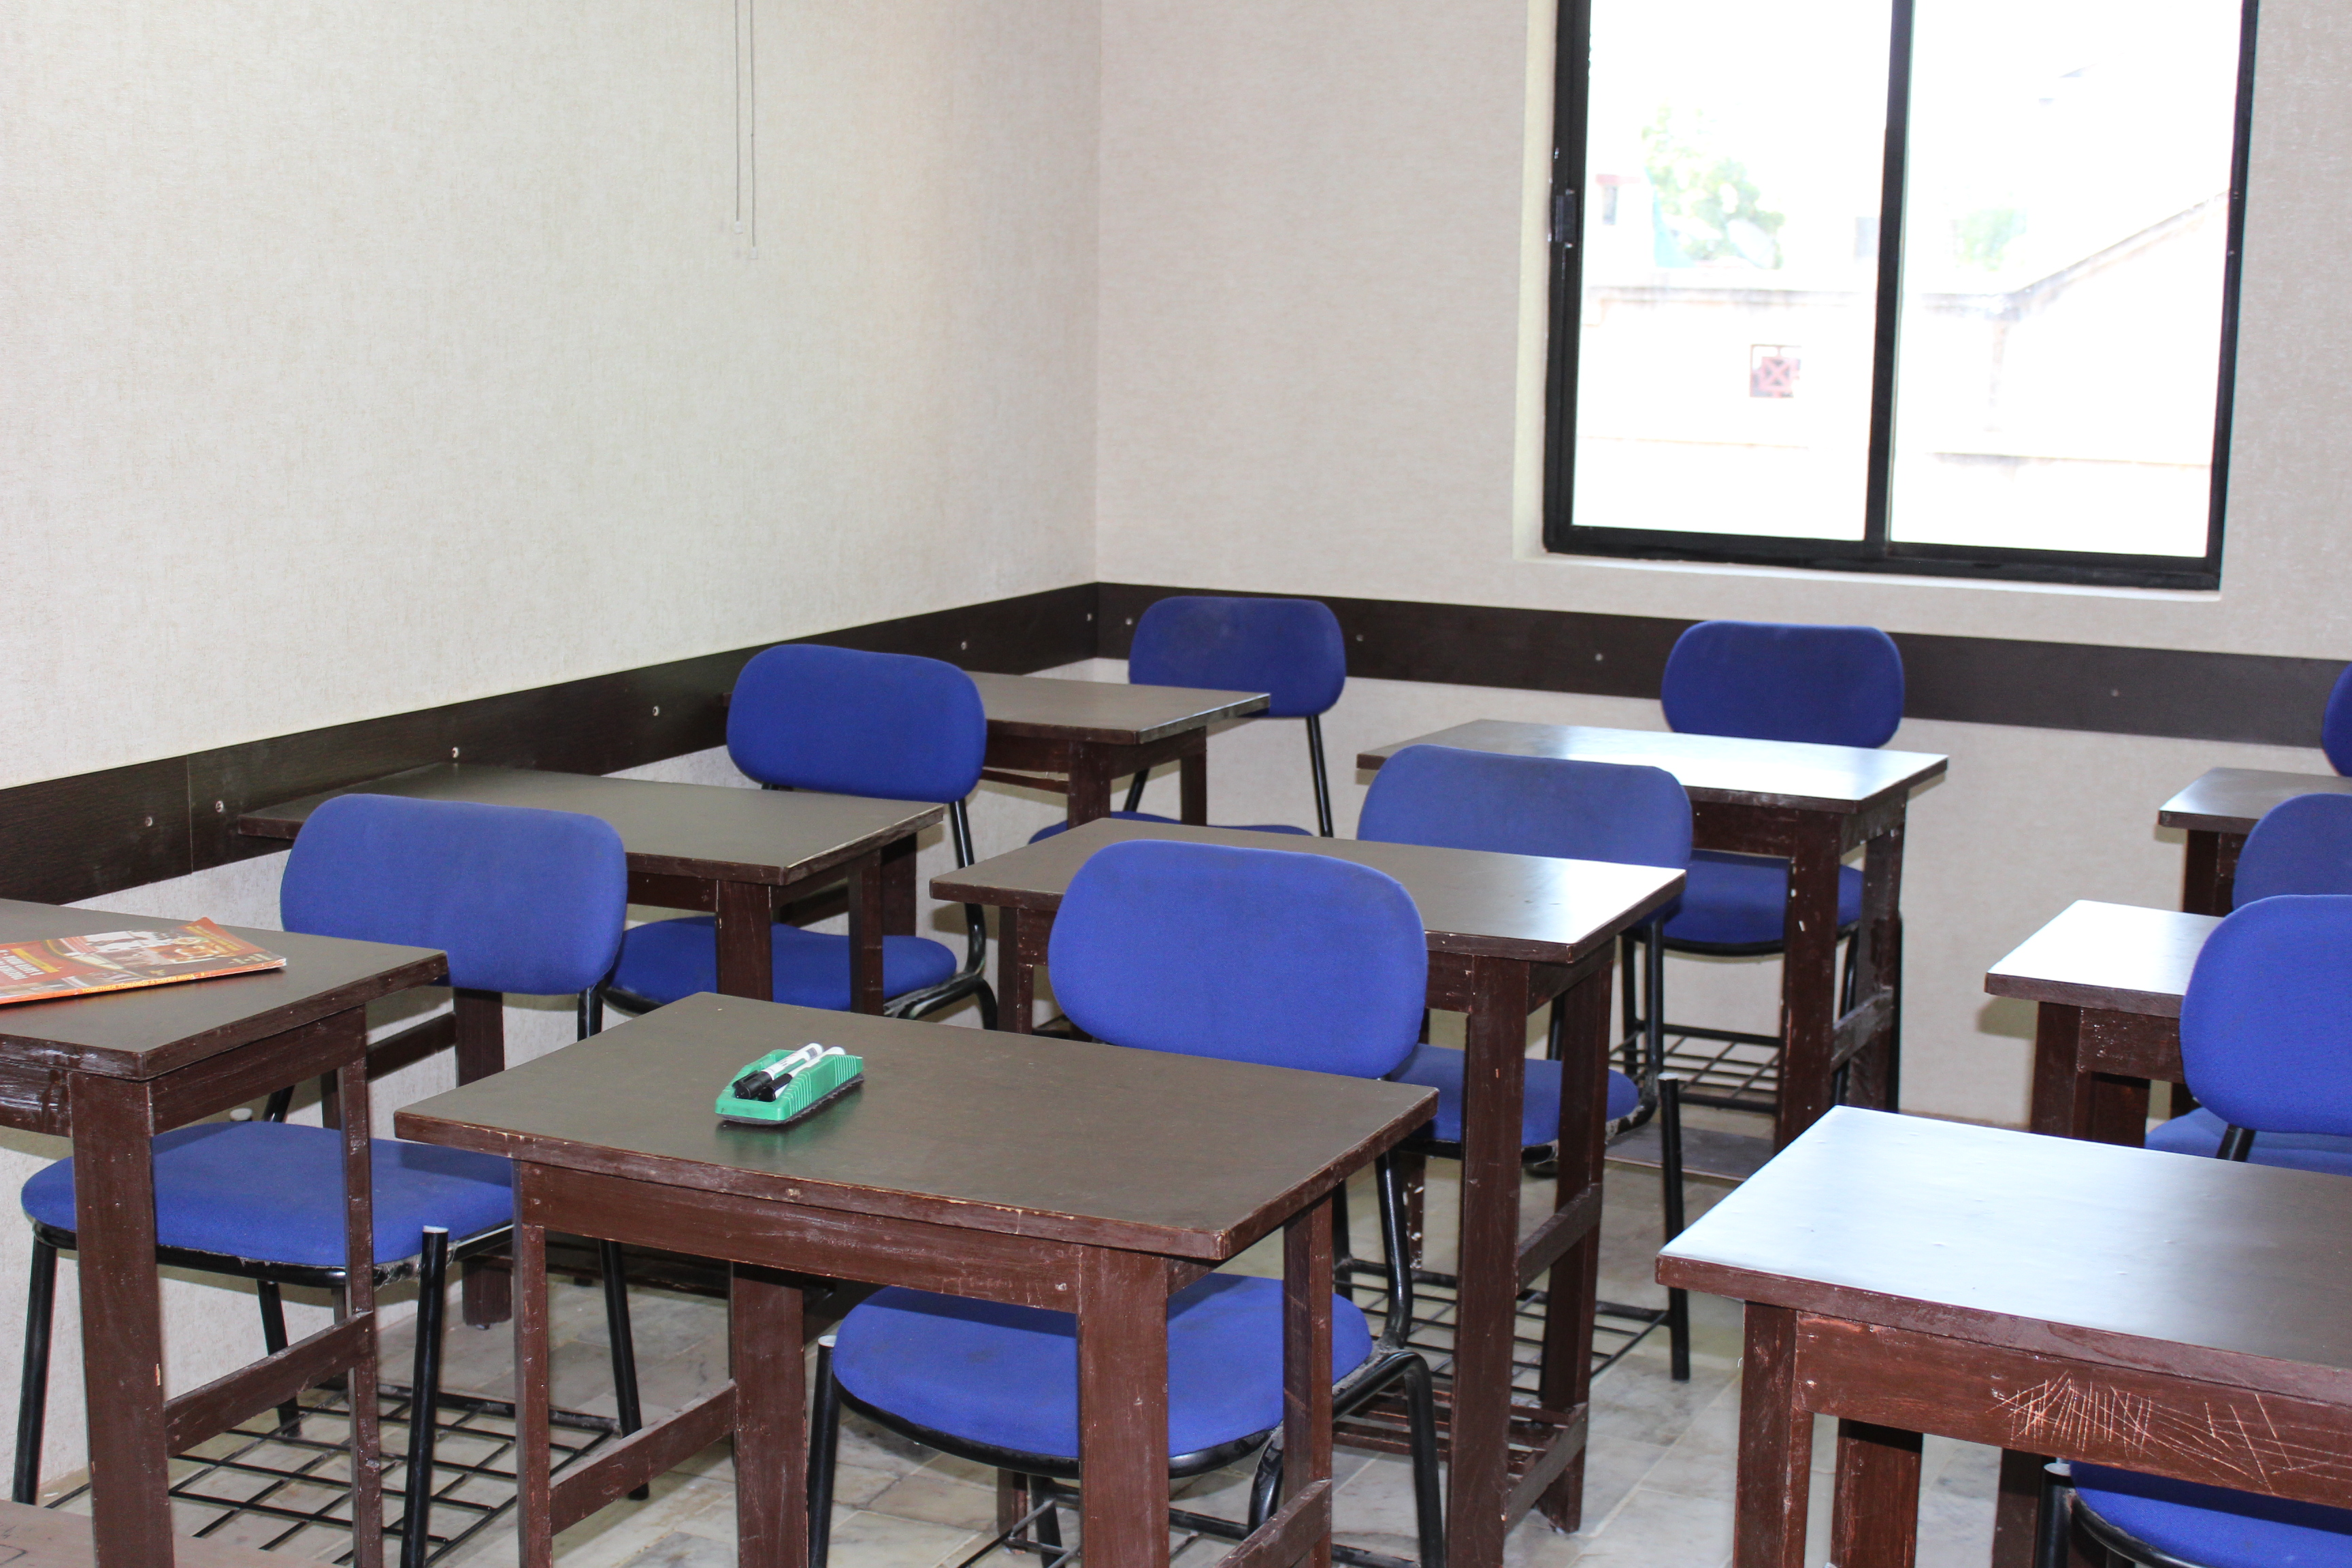 Infinity Knowledge Academy in Bopal, Ahmedabad-380058